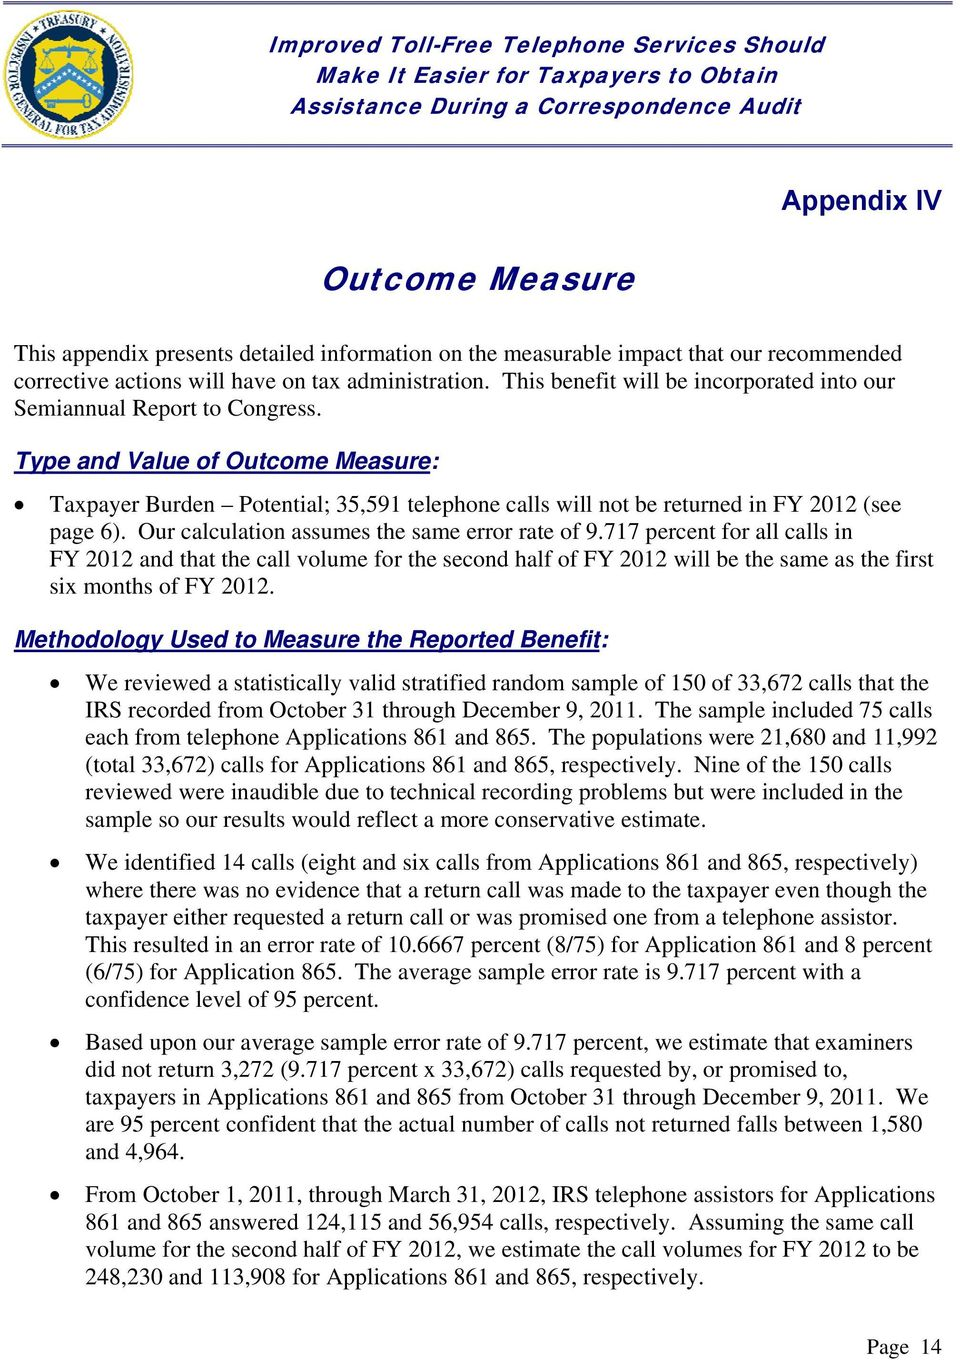 Type and Value of Outcome Measure: Taxpayer Burden Potential; 35,591 telephone calls will not be returned in FY 2012 (see page 6). Our calculation assumes the same error rate of 9.